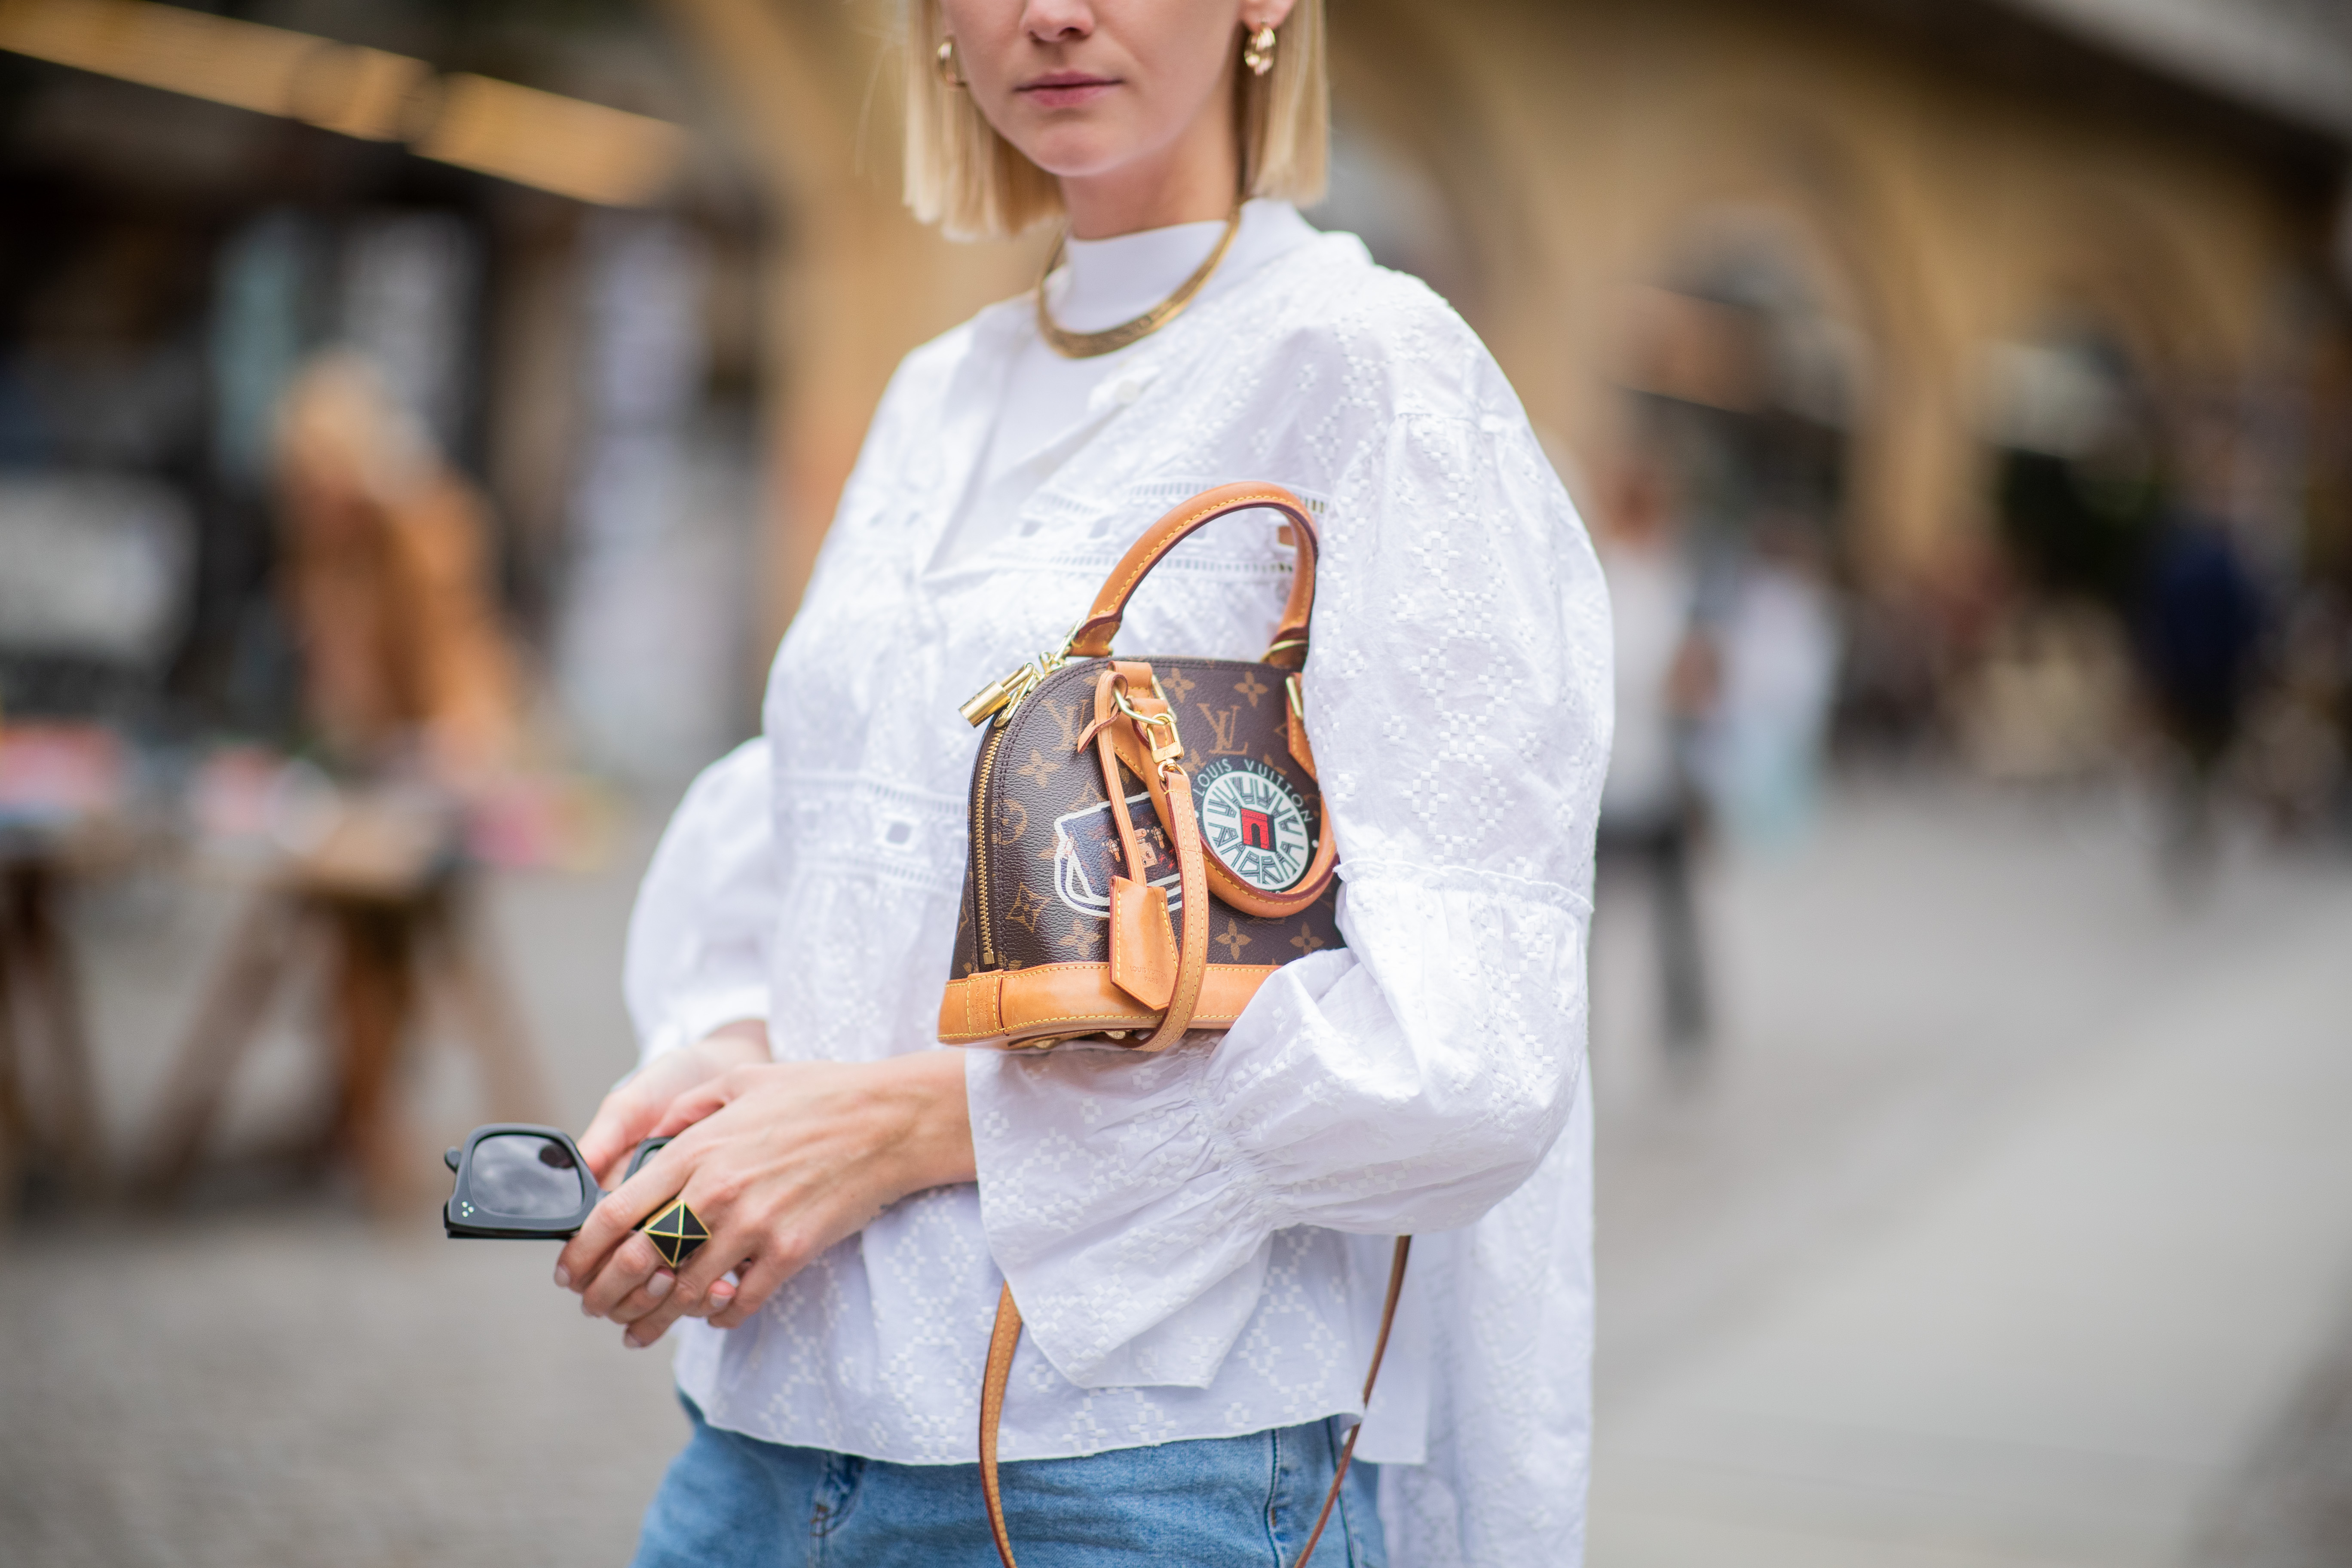 How to Know If a Discounted Designer Handbag Is Fake